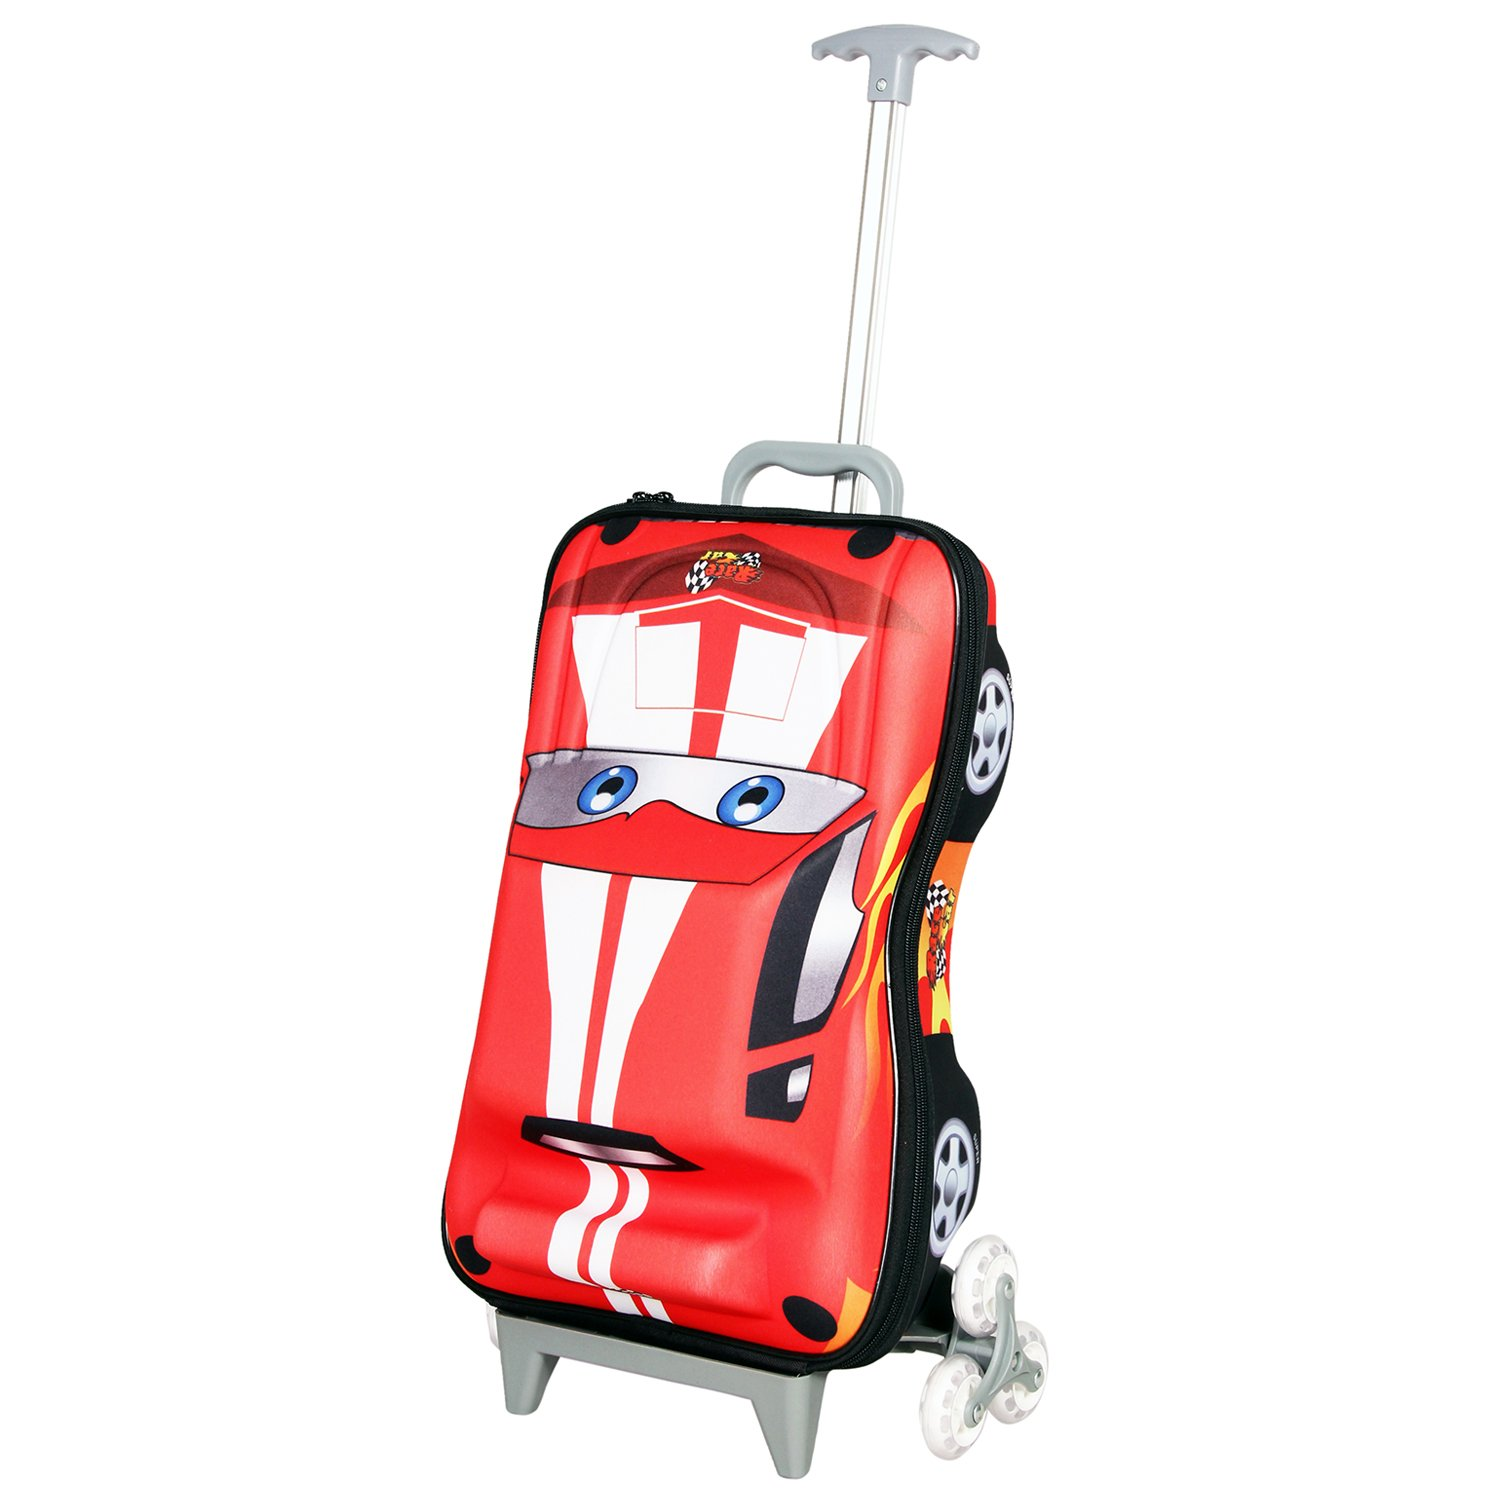 T Bags 3D Hunter Car Synthetic 1693 Cms Red Hybrid Childerns Luggage Amazonin Wallets